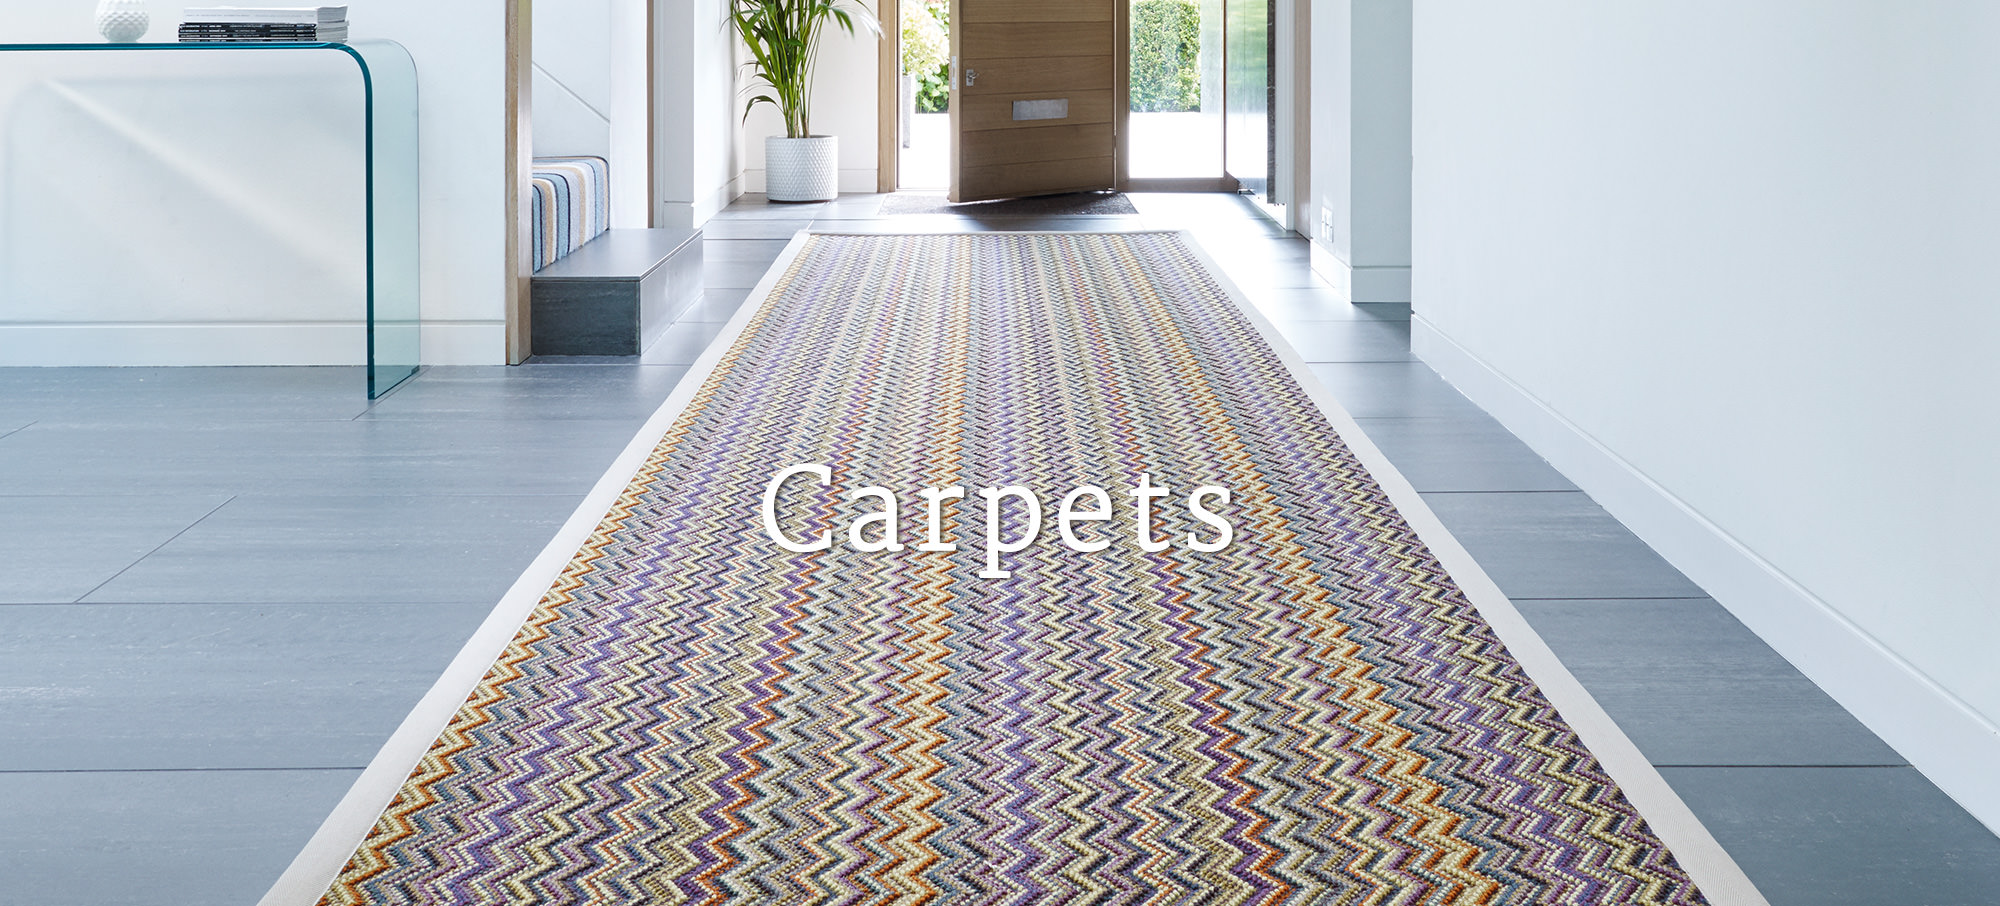 Image result for carpet banner